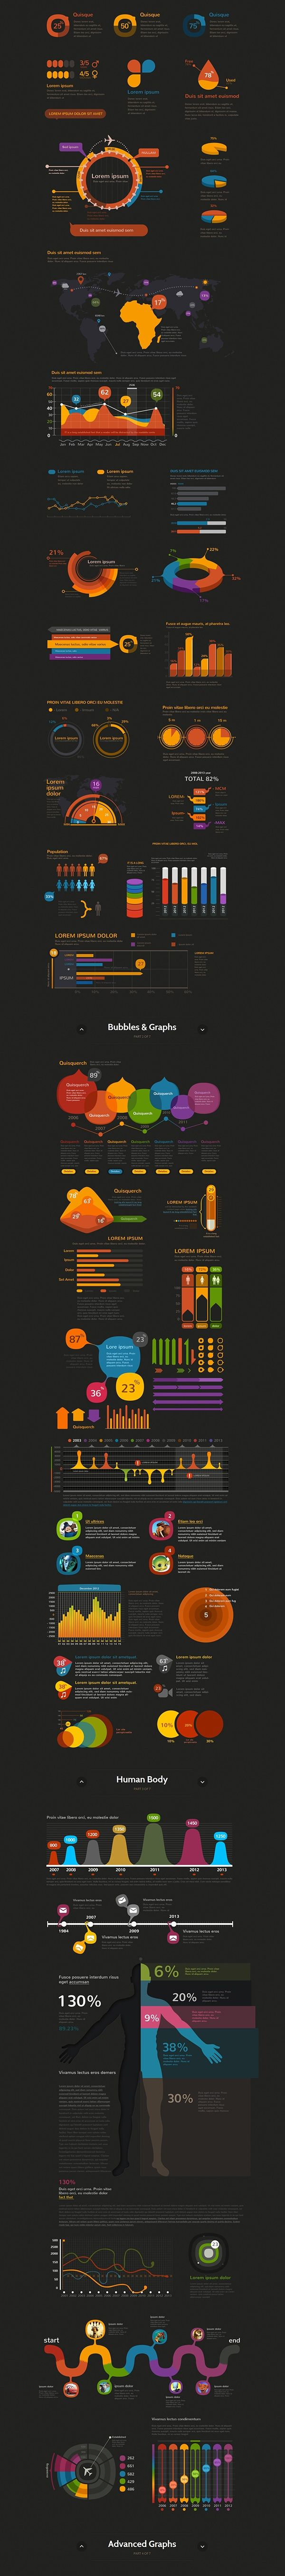 Crooked Stats Infographic Kit on Behance